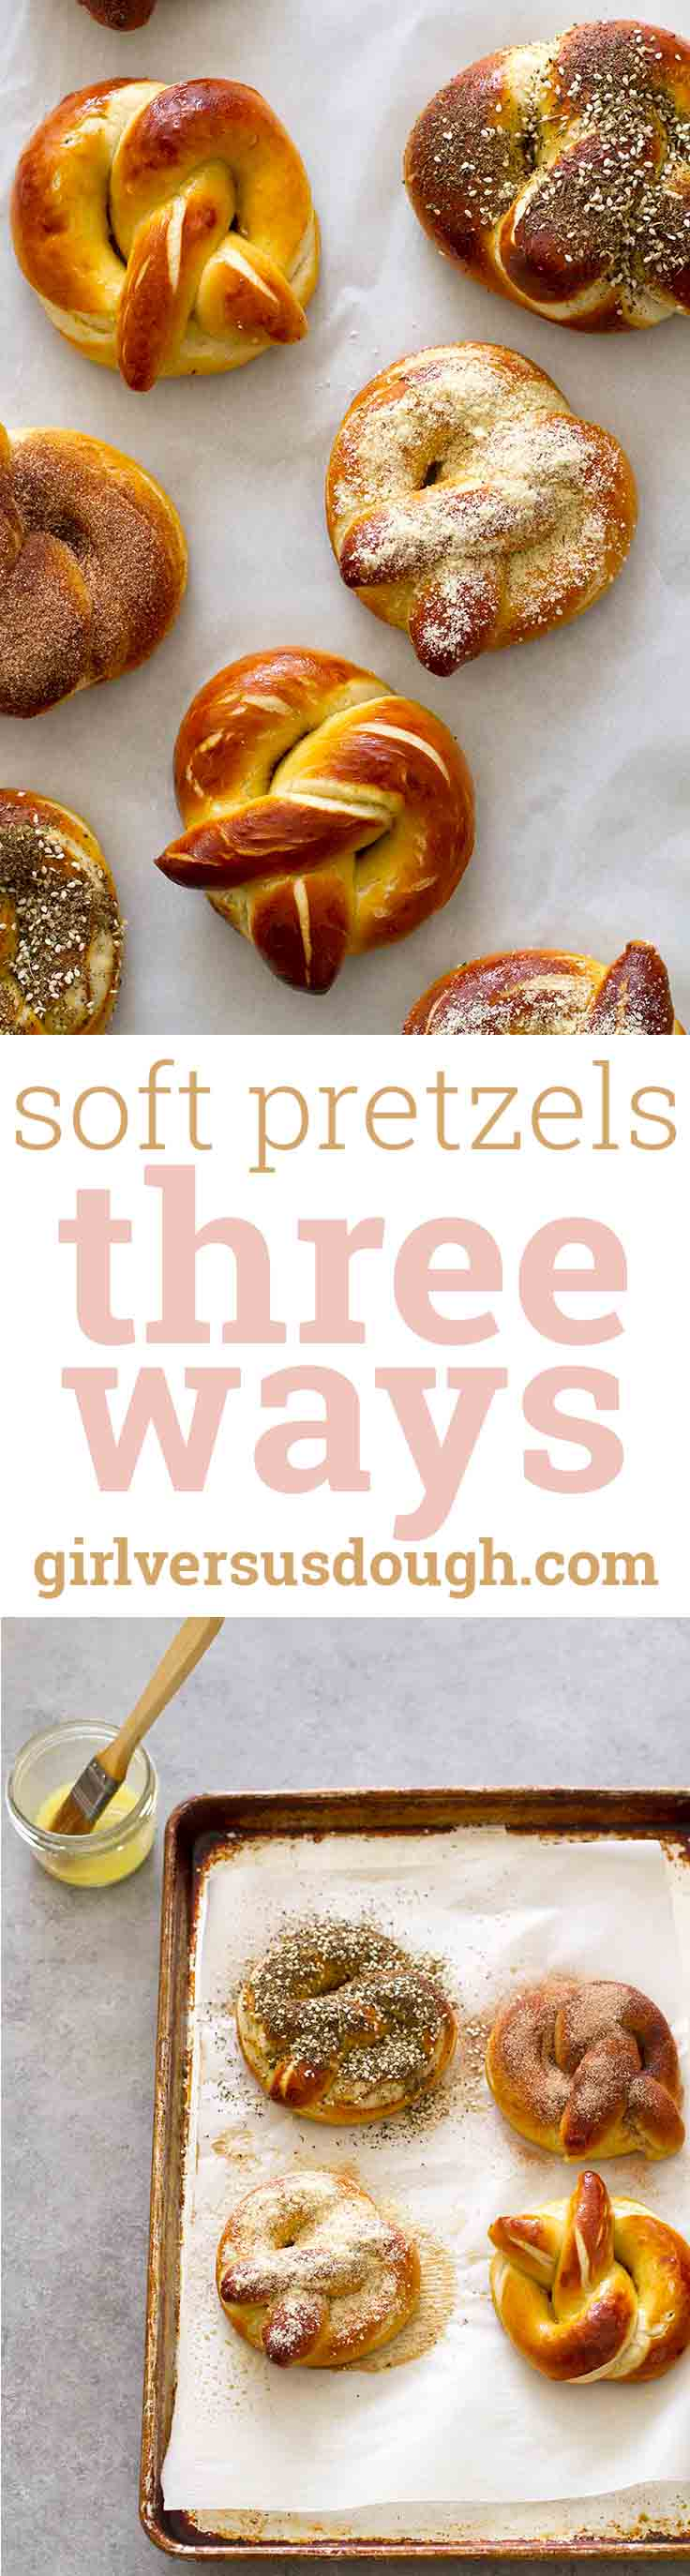 Homemade Soft Pretzels, Three Ways -- topped with cinnamon sugar, garlic Parmesan or za'atar sesame, these soft and buttery pretzels are the perfect snack or game day food. girlversusdough.com @girlversusdough